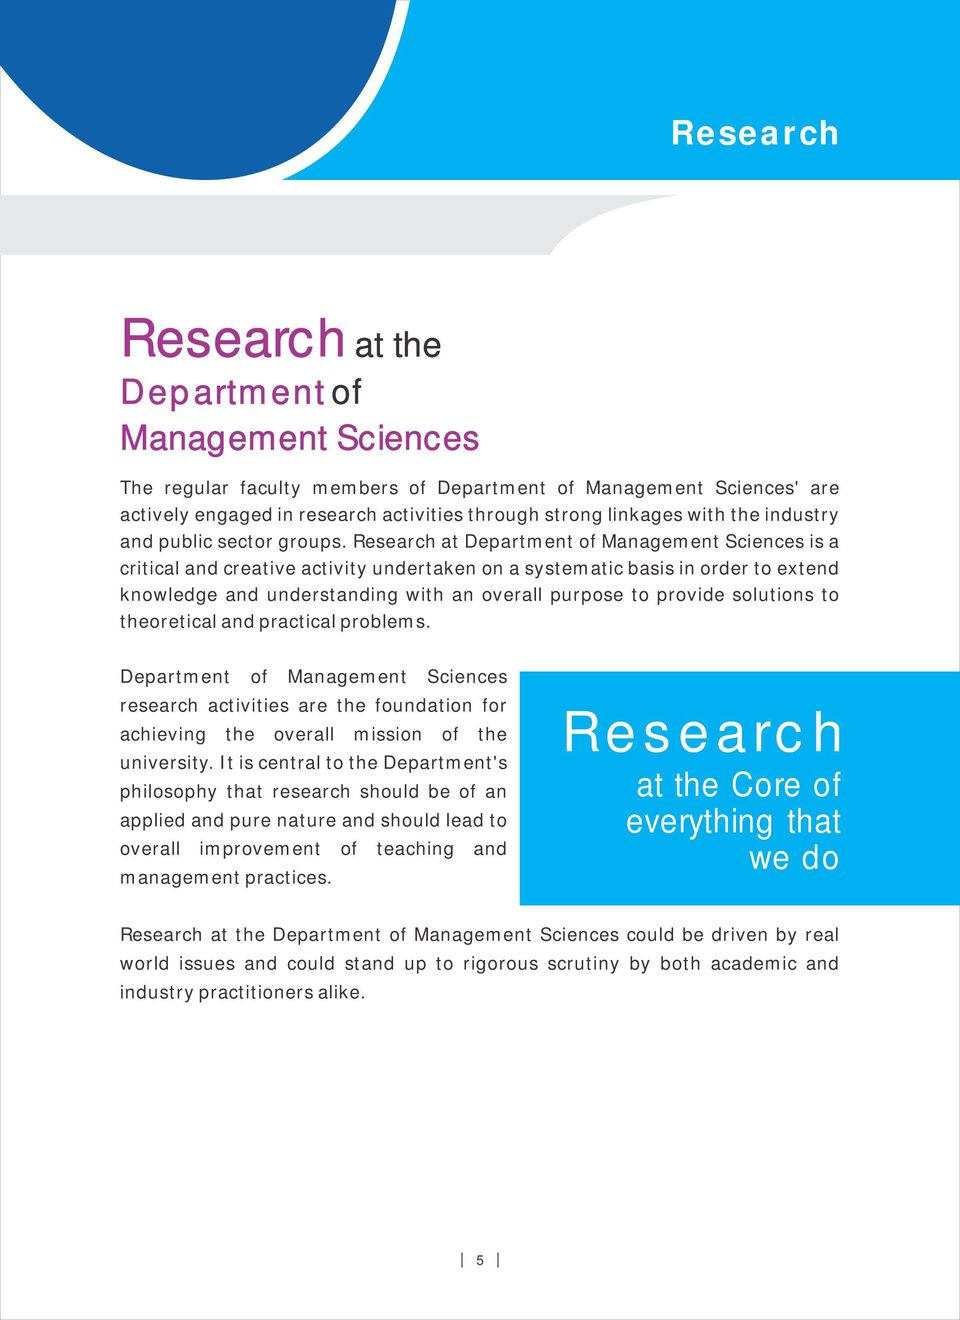 Research at Department of Management Sciences is a critical and creative activity undertaken on a systematic basis in order to extend knowledge and understanding with an overall purpose to provide